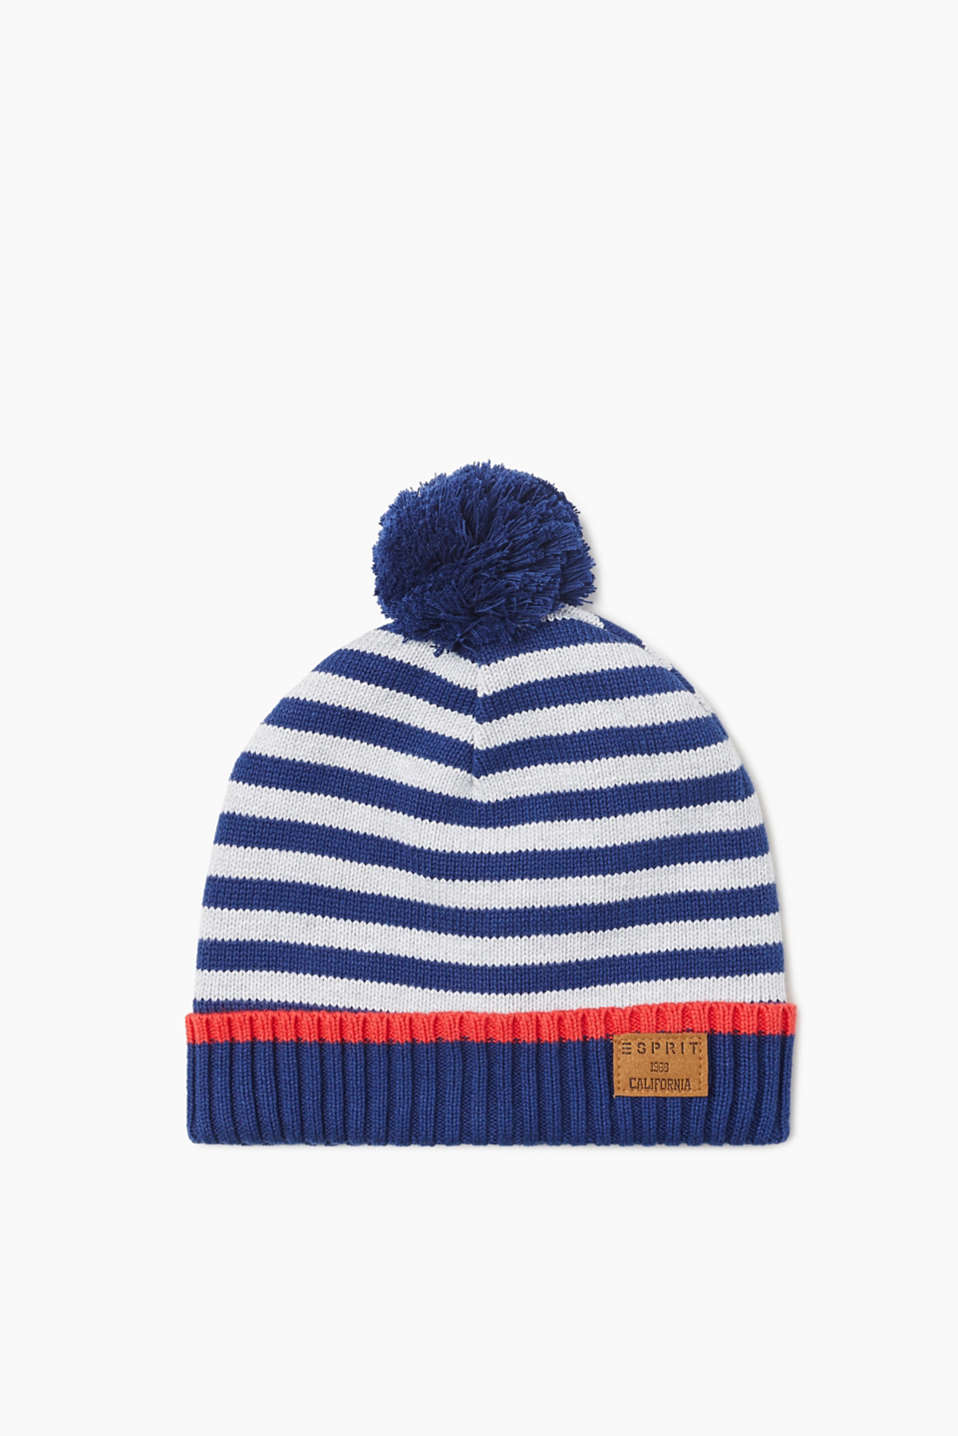 Esprit - Cotton hat with fleece lining